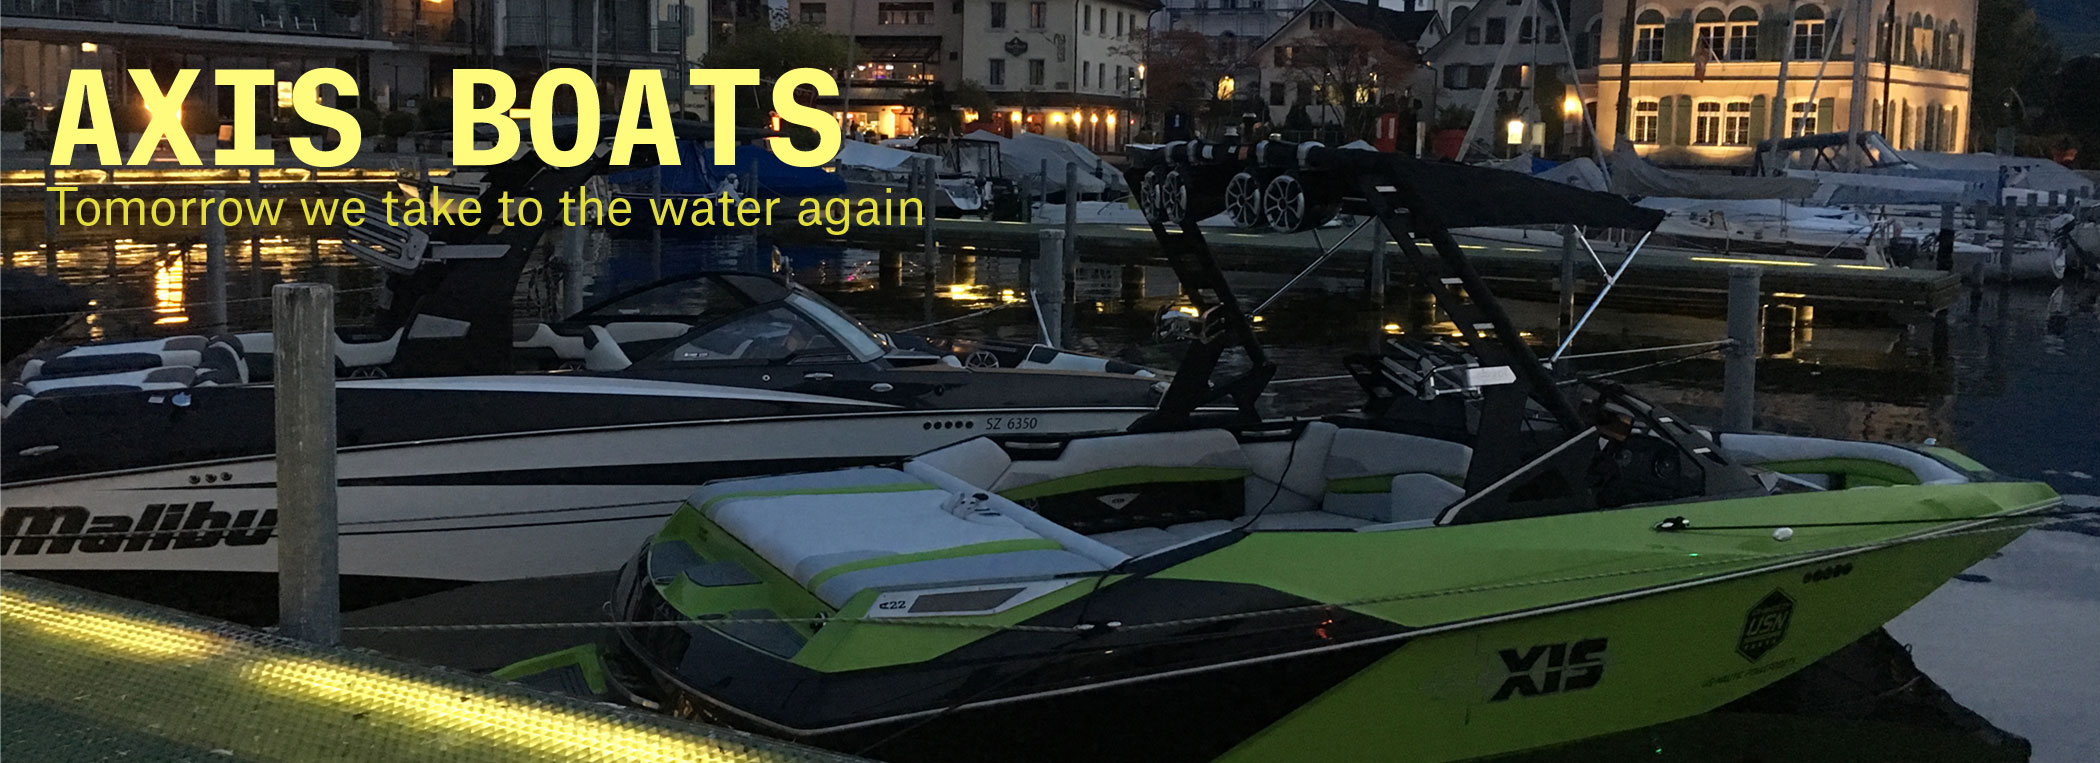 Axis-Boats-New-Day